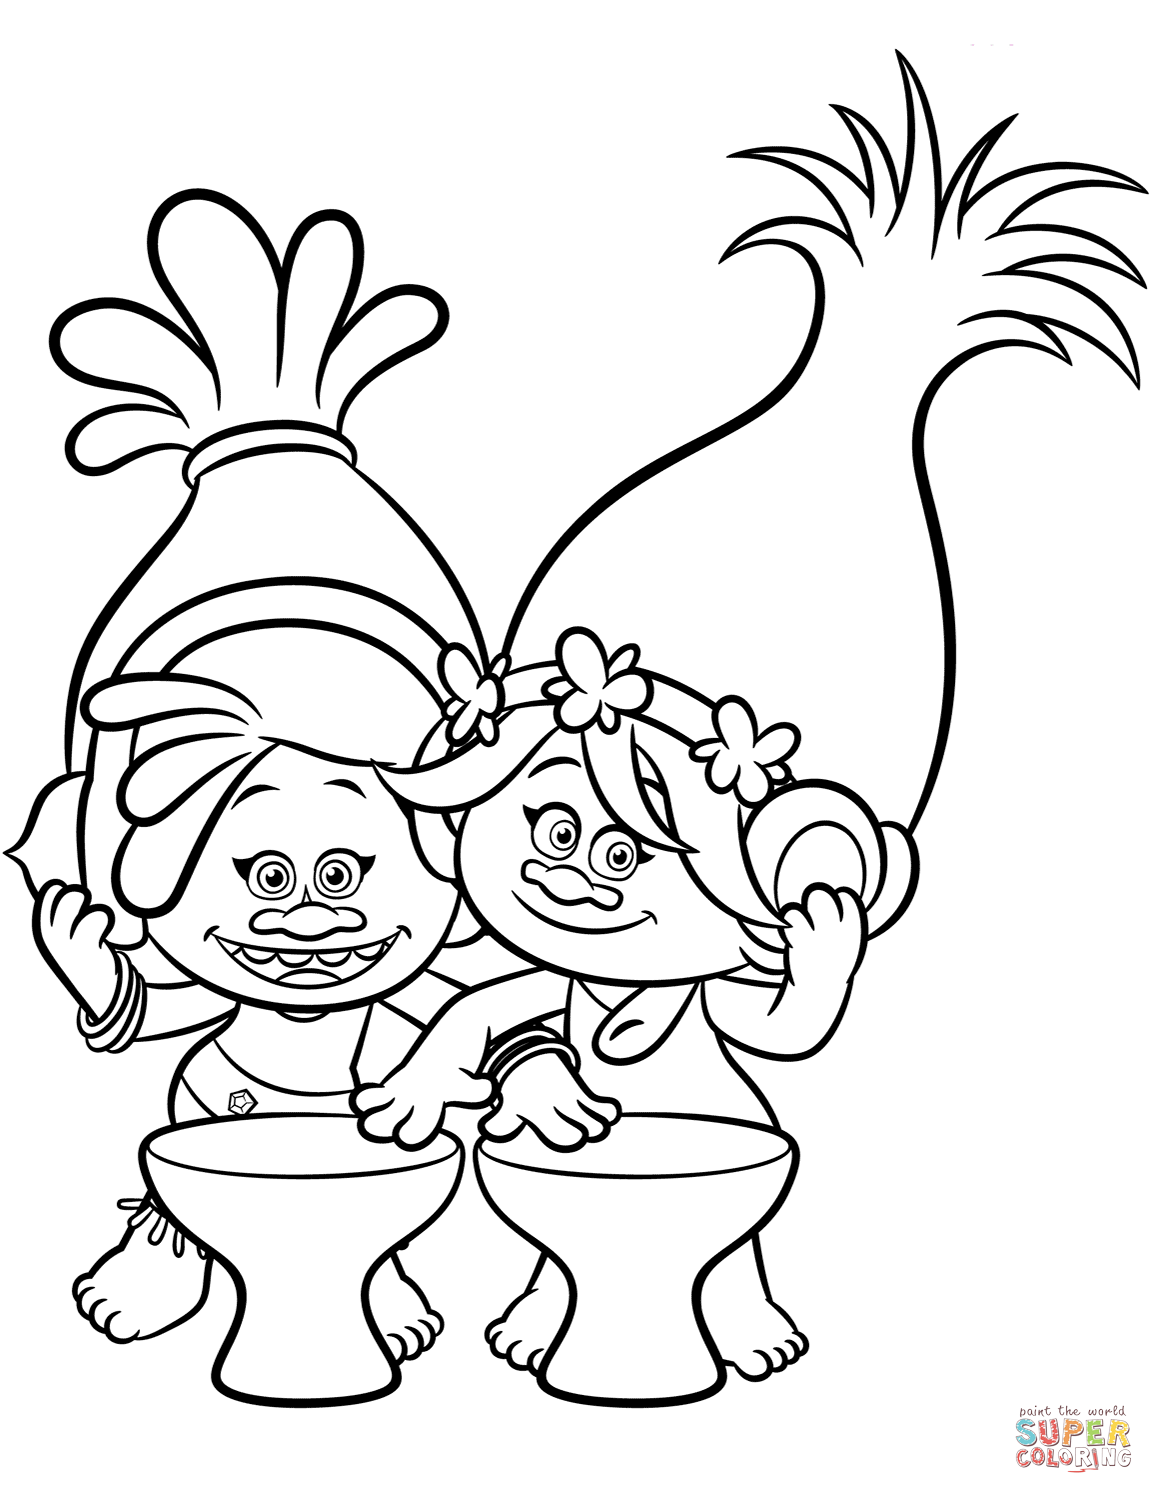 1154x1494 Trolls Movie Coloring Pages Best For Kids New